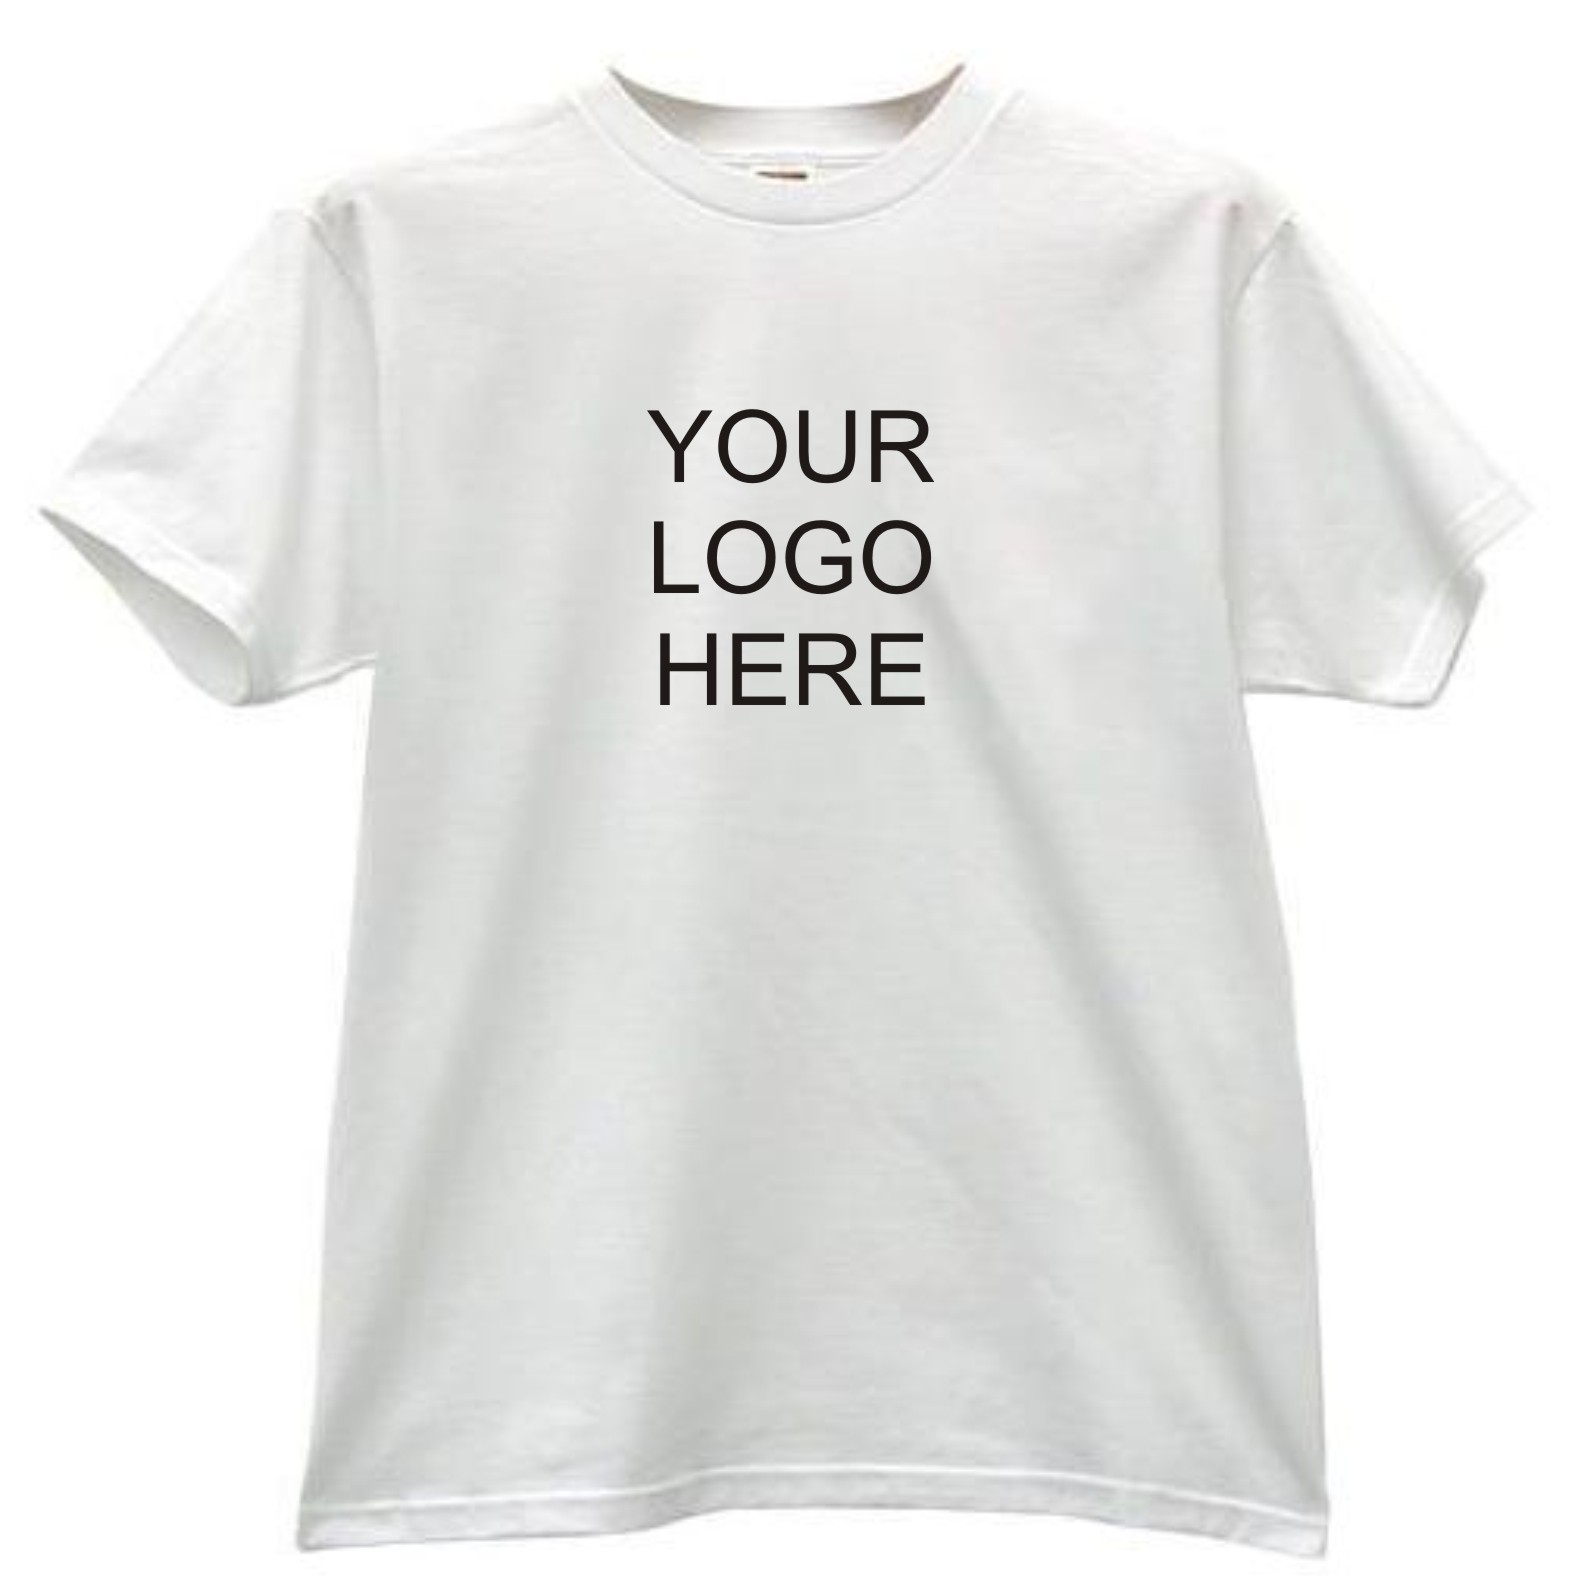 7 ways to use custom t shirts to advertise your company for How to copyright at shirt design